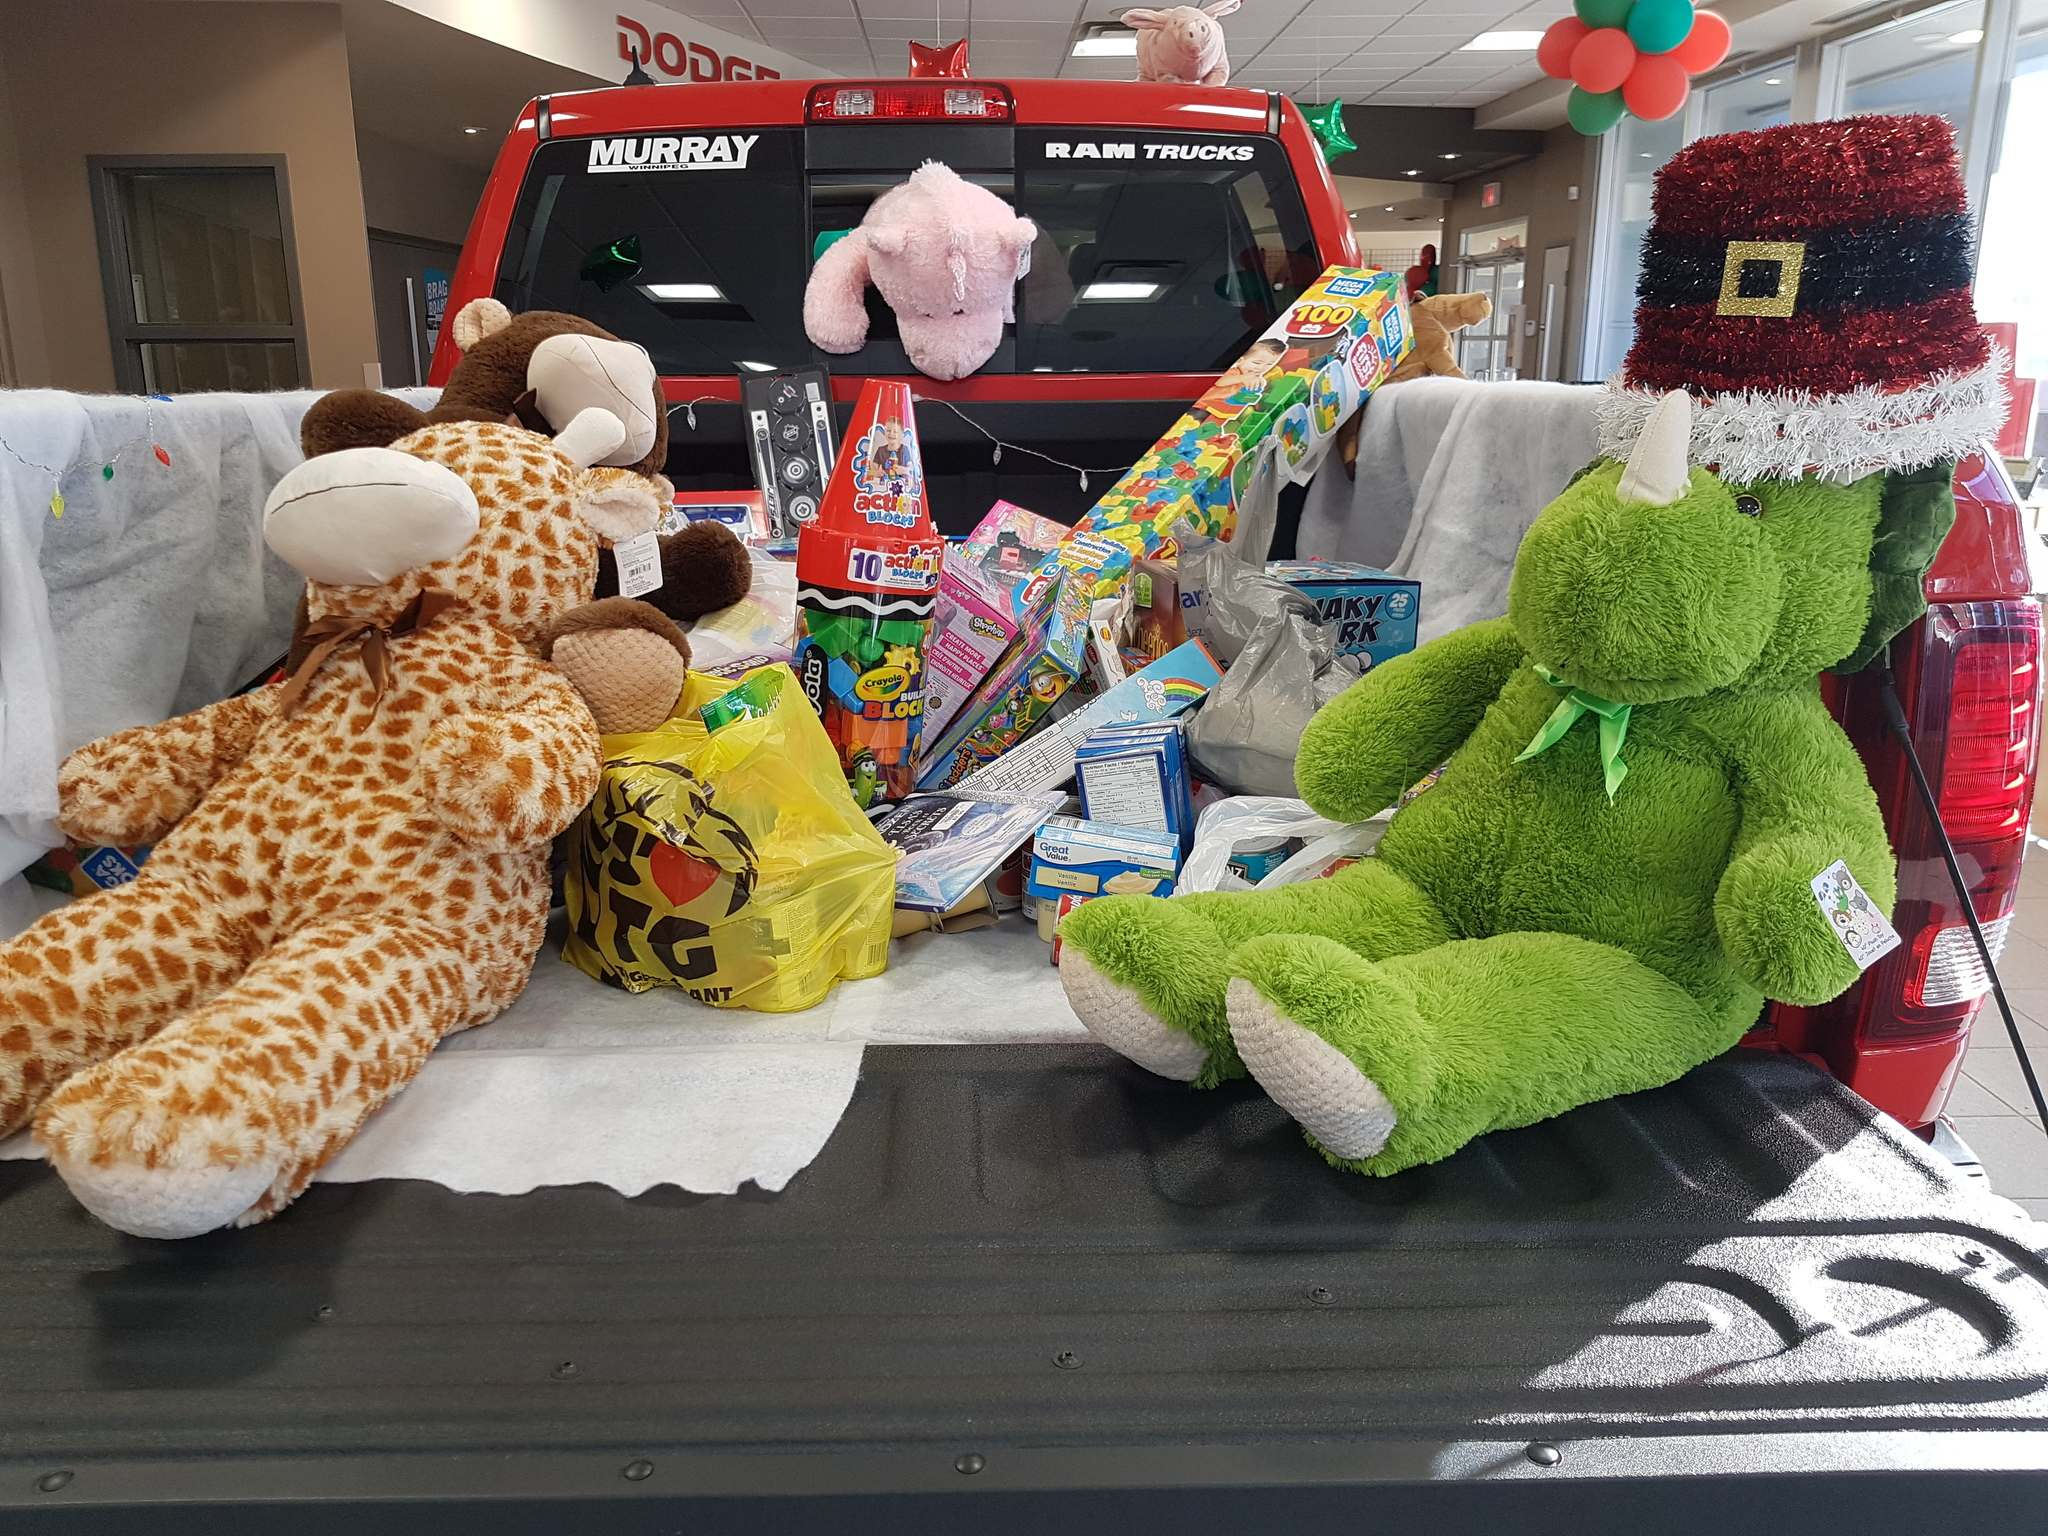 SuppliedMurray Chevrolet and Murray Chrysler Dodge Jeep Ram filled trucks with Christmas presents for the less fortunate, including toys for kids.